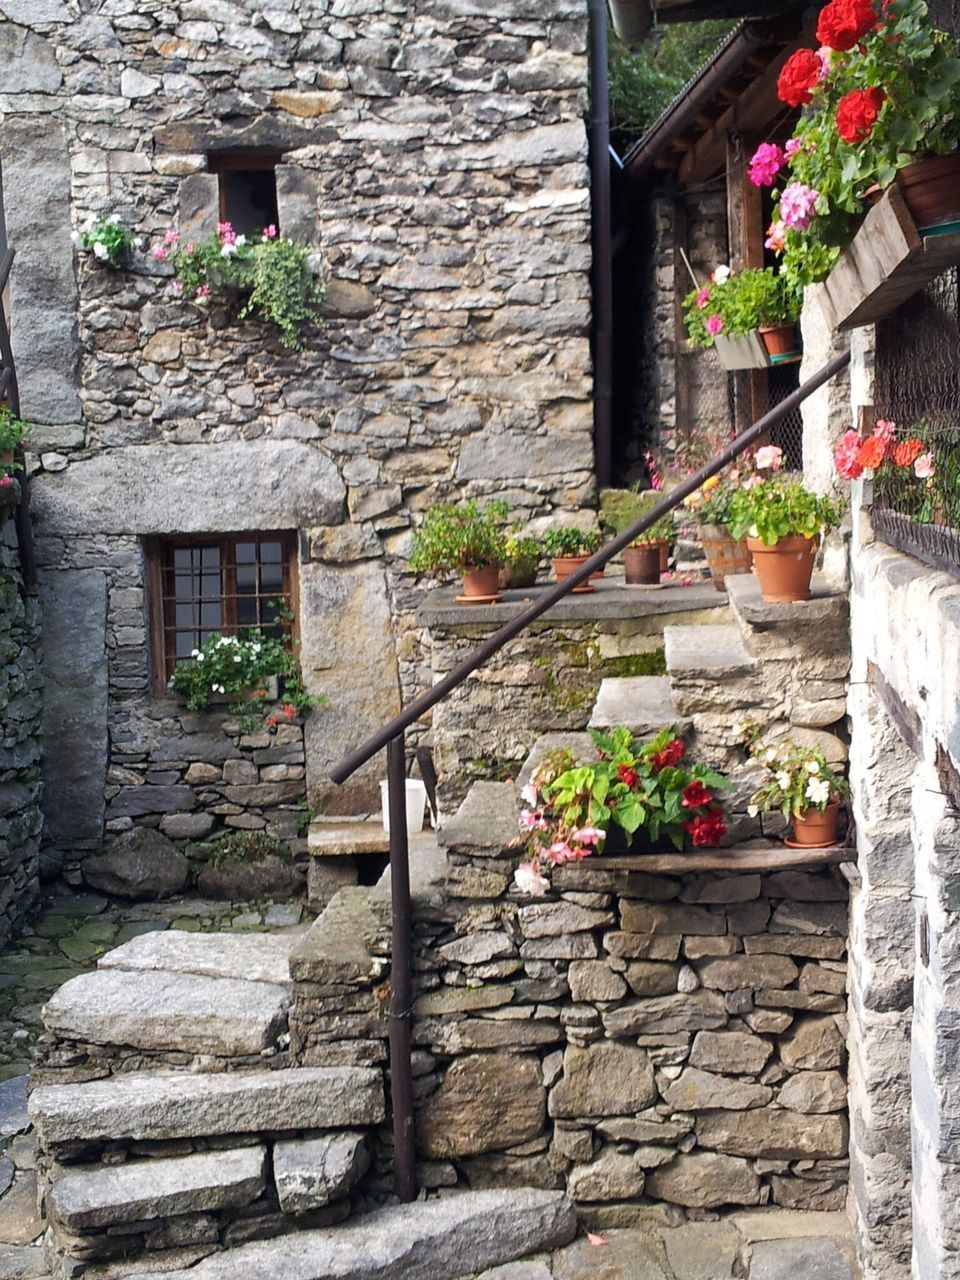 architecture, plant, built structure, outdoors, building exterior, flower, day, no people, window box, growth